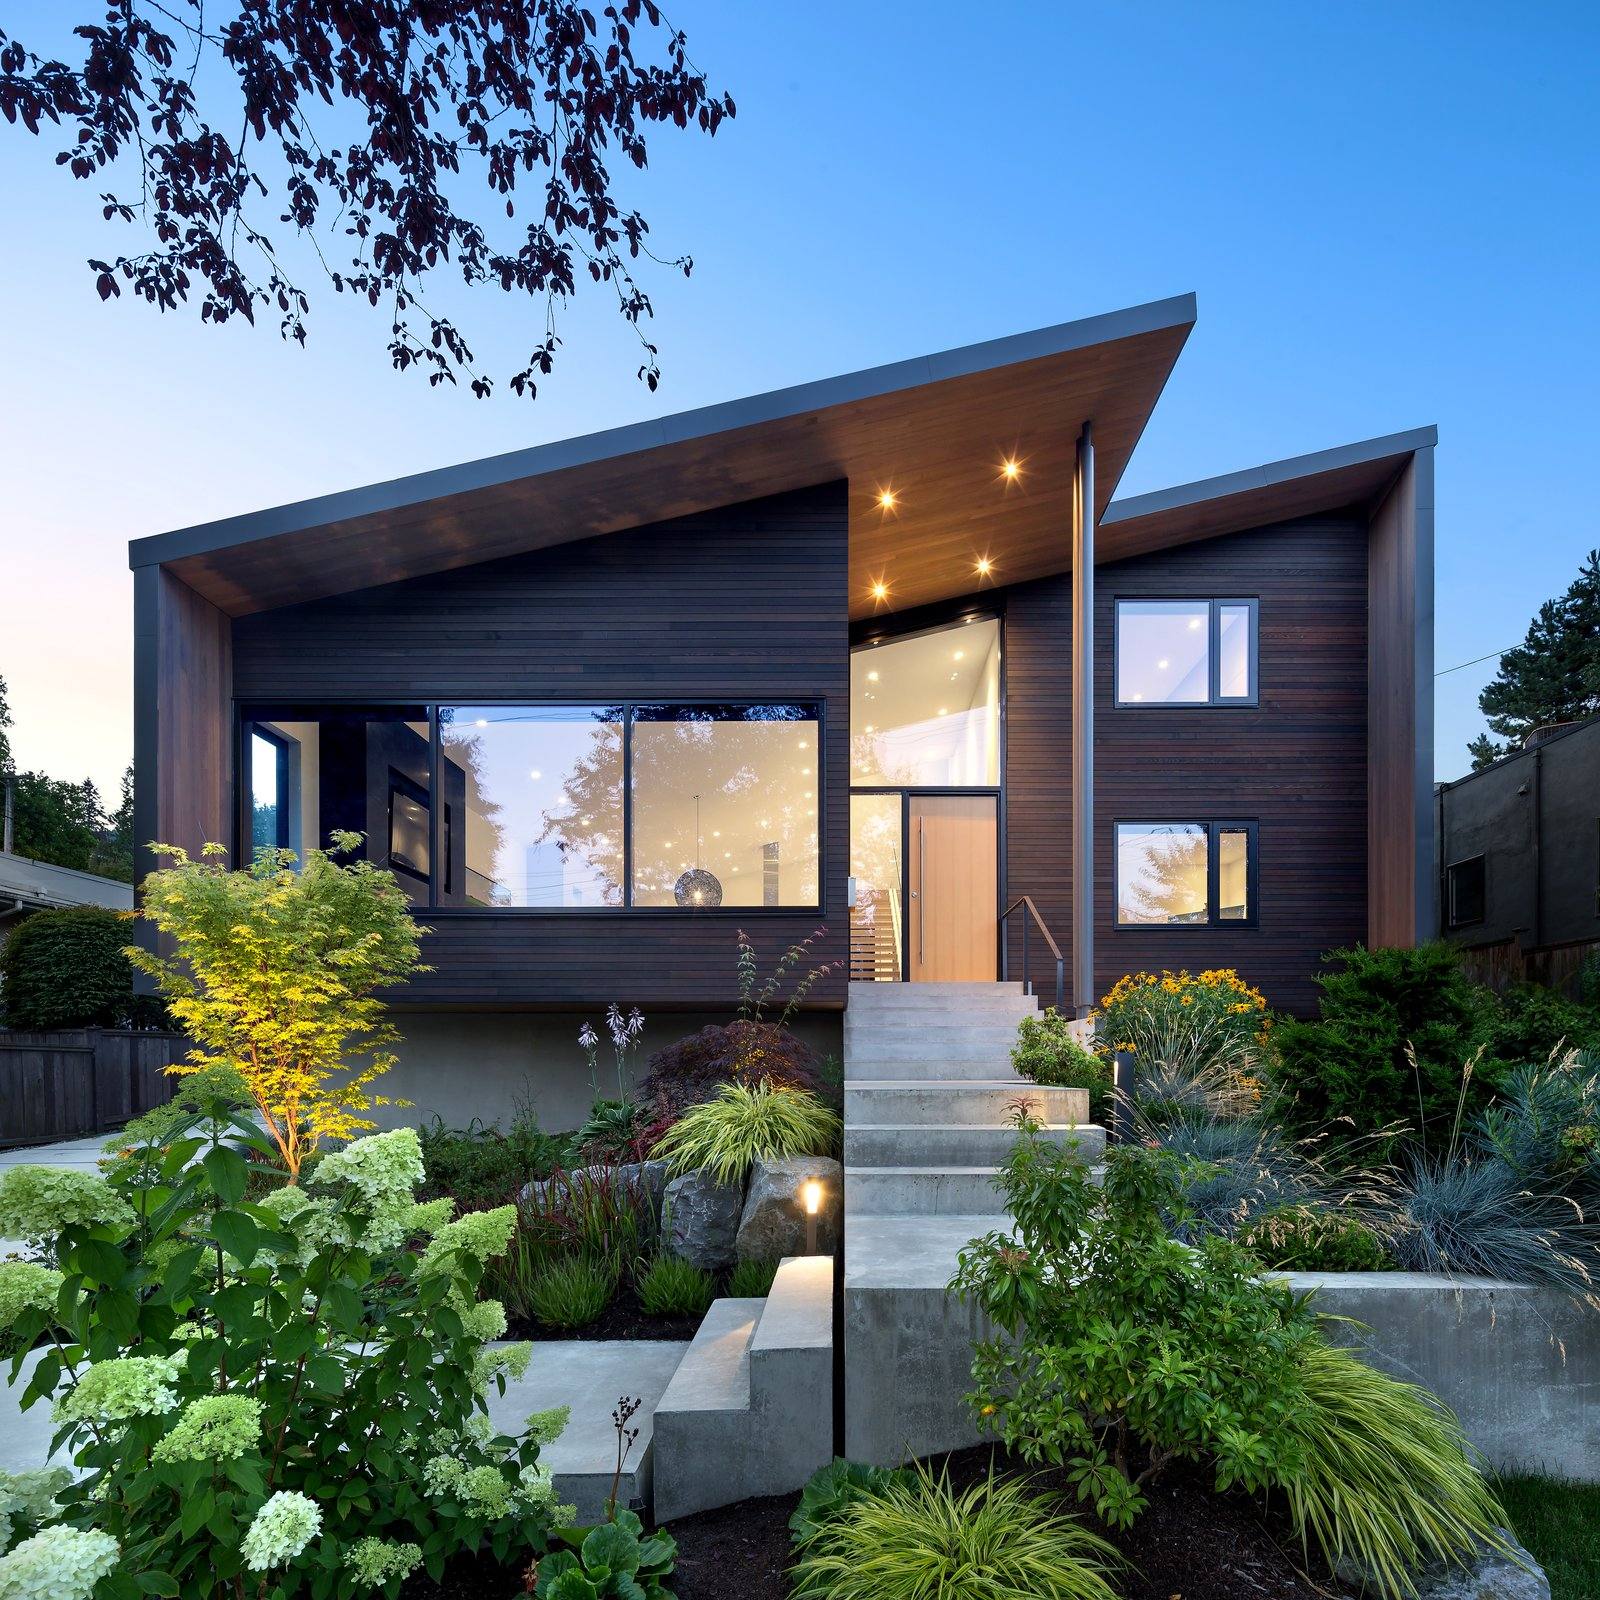 Home Design Ideas Contemporary: An Ordinary Suburban Home In Vancouver Is Given A Modern